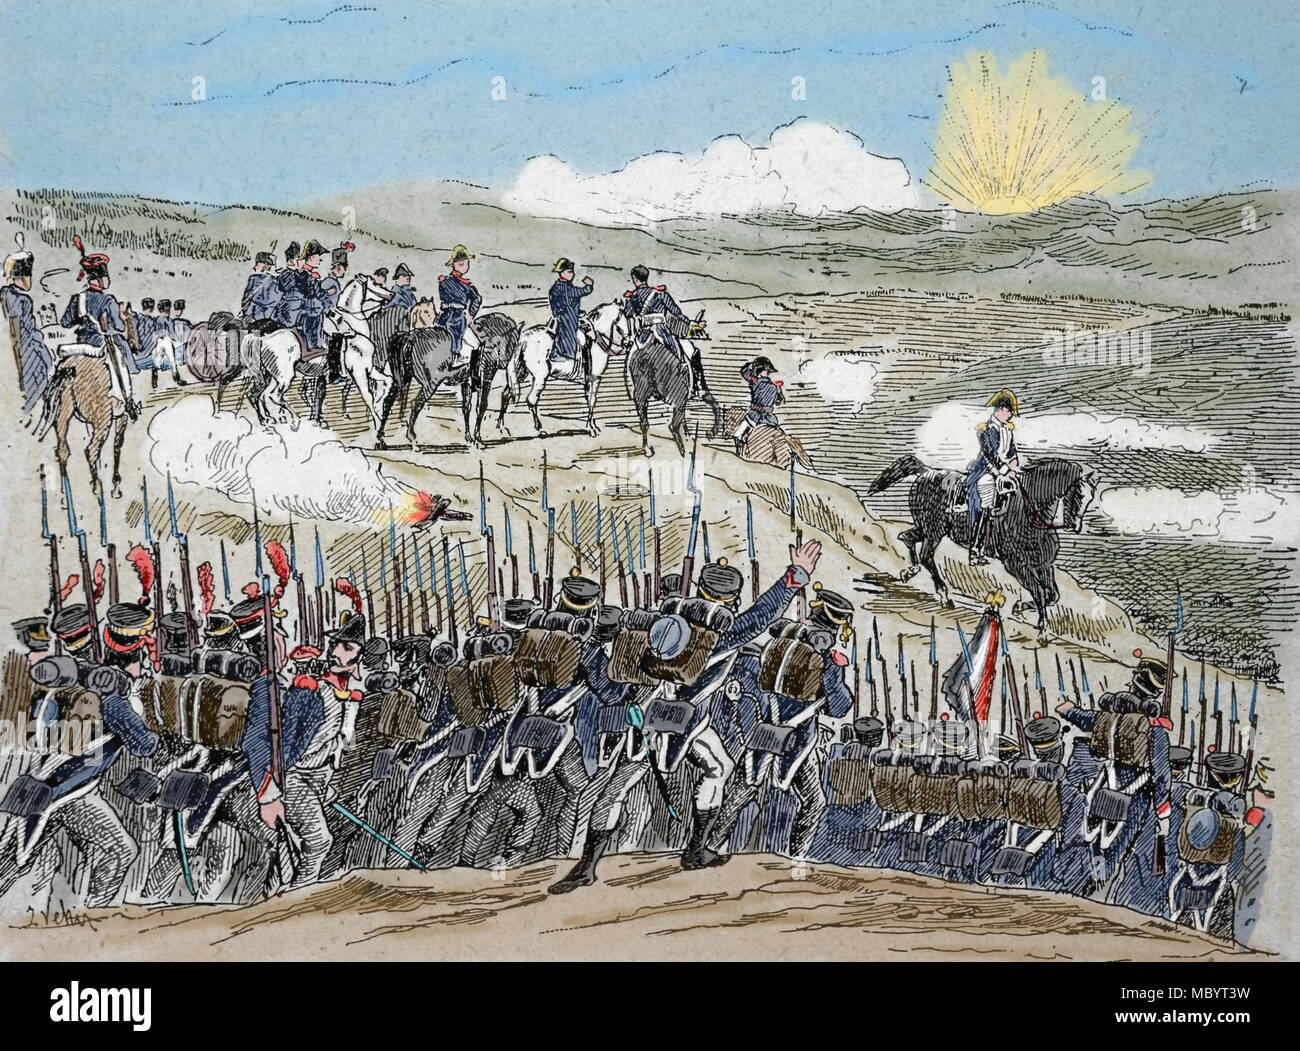 Battle of Austerlitz 2 December, 1805). Napoleonic Wars, Part of War of the Third Coalition. Engraving, 19th century. - Stock Image